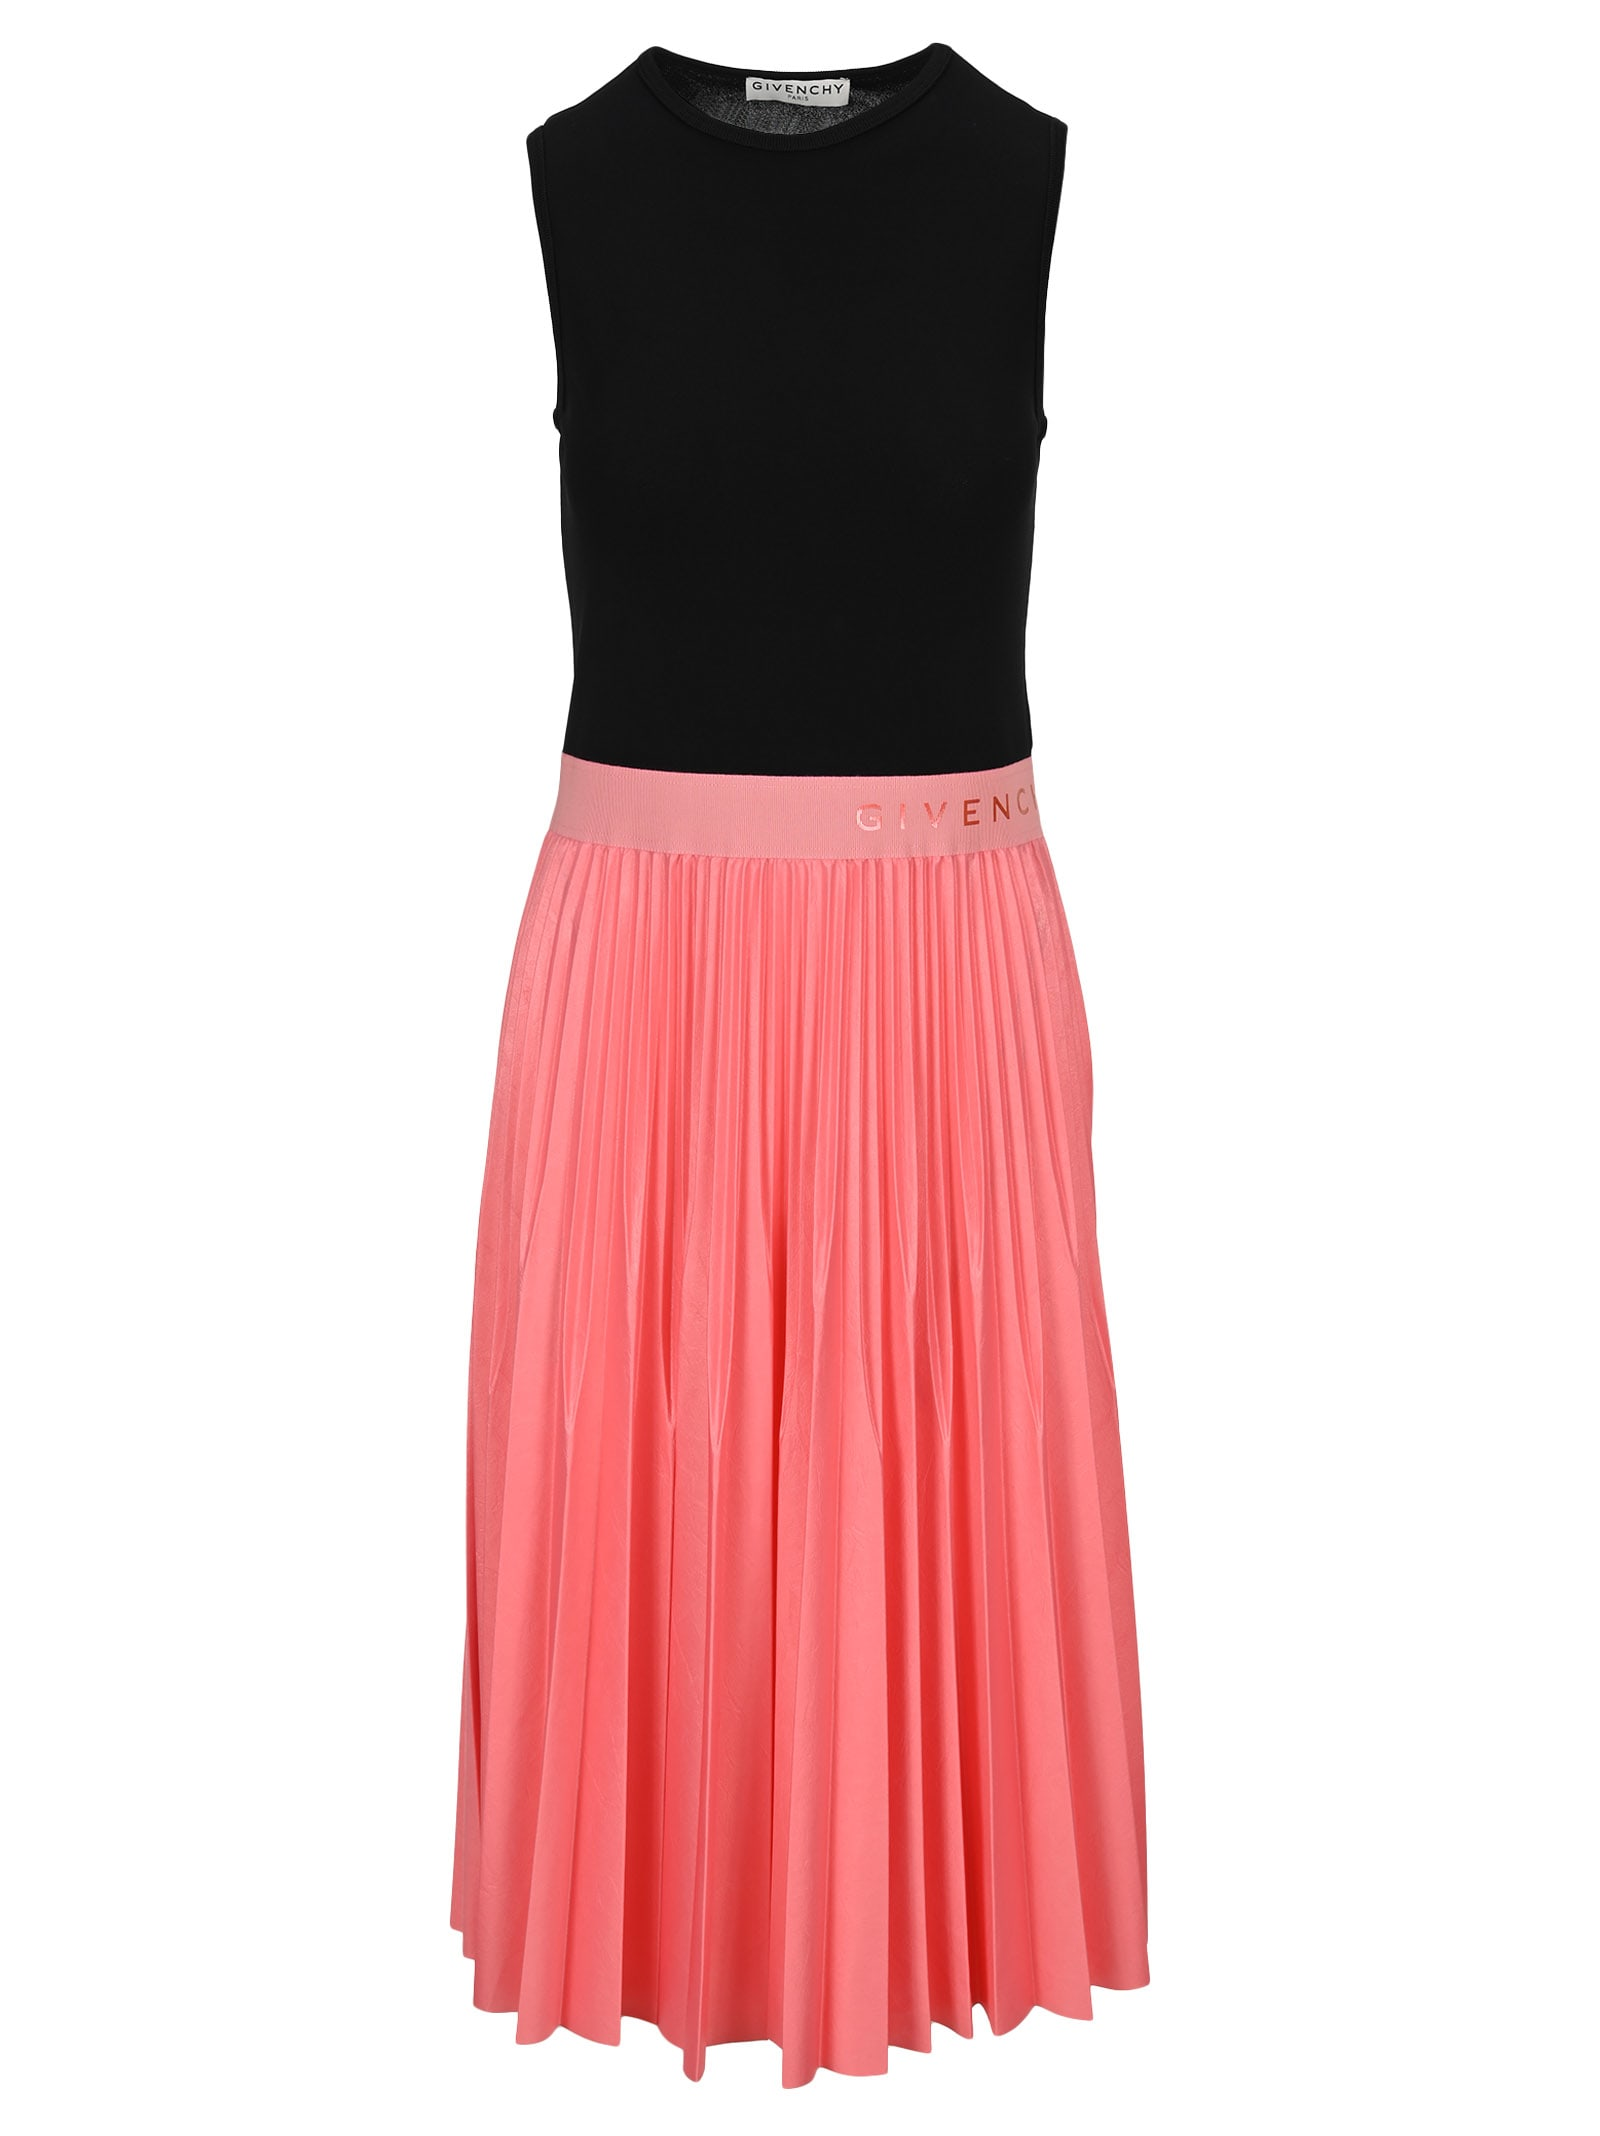 Buy Givenchy Two Tone Pleated Midi Dress online, shop Givenchy with free shipping